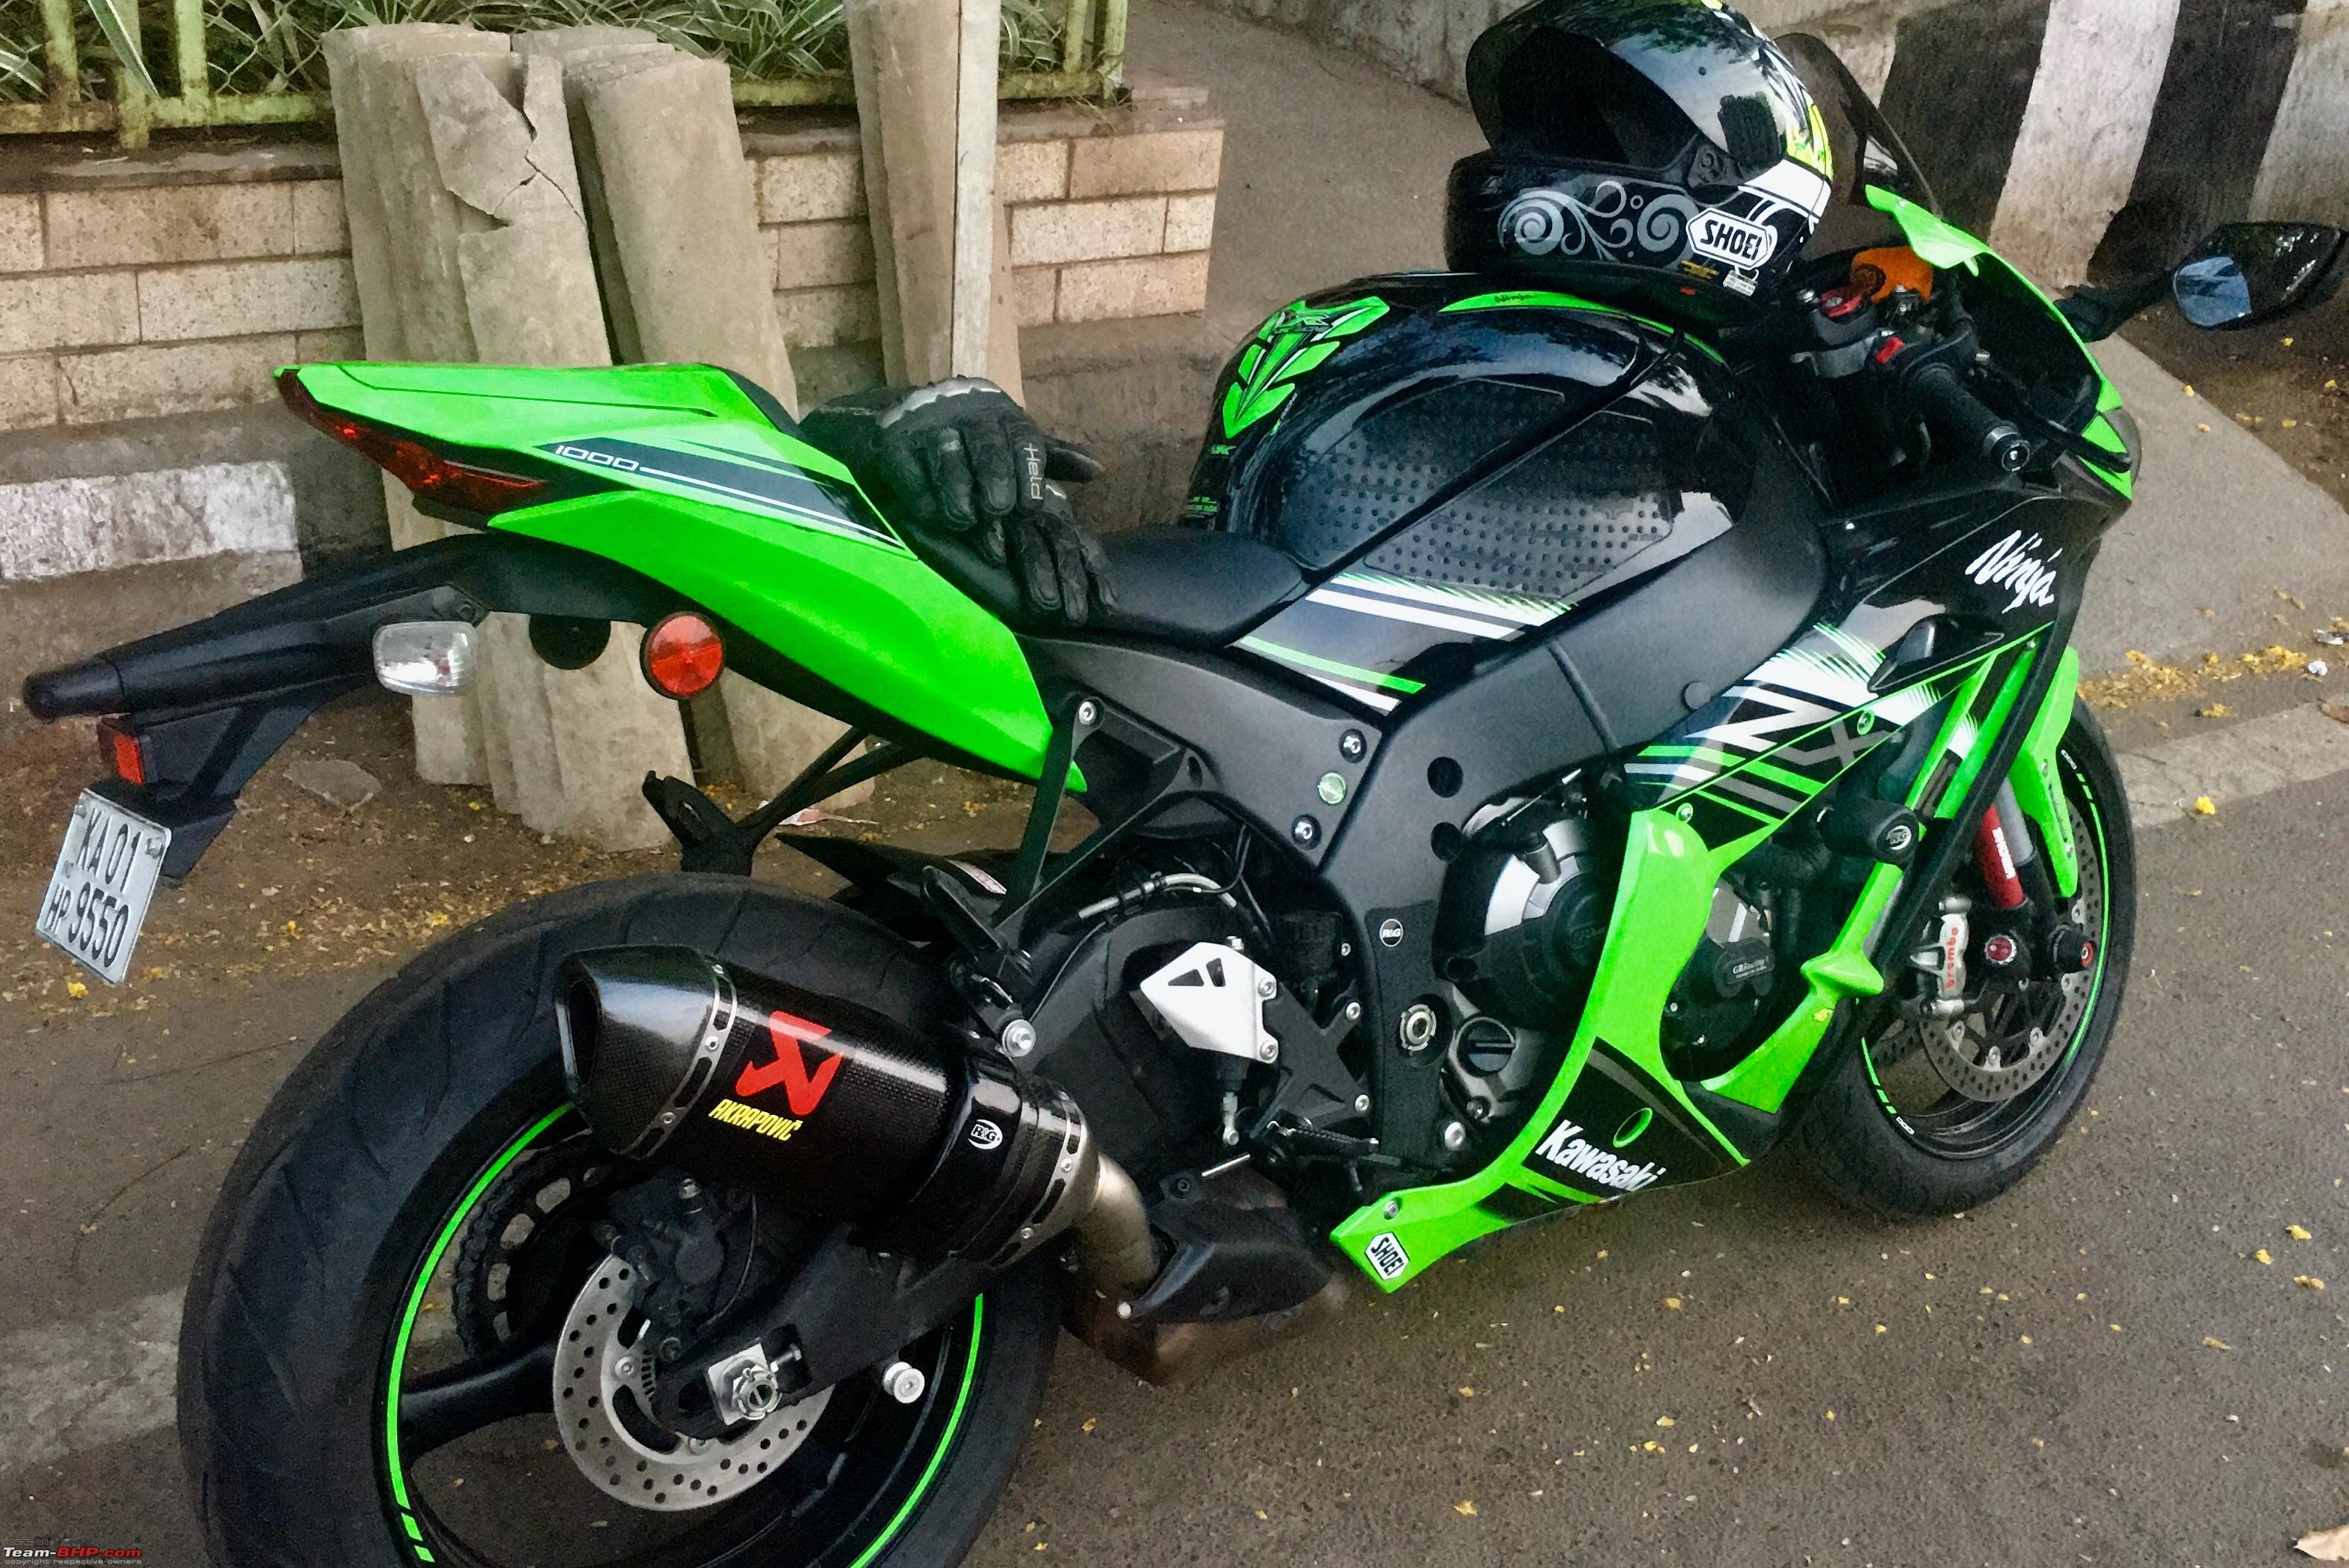 2016 Kawasaki ZX-10R : Shredder joins the family - Page 5